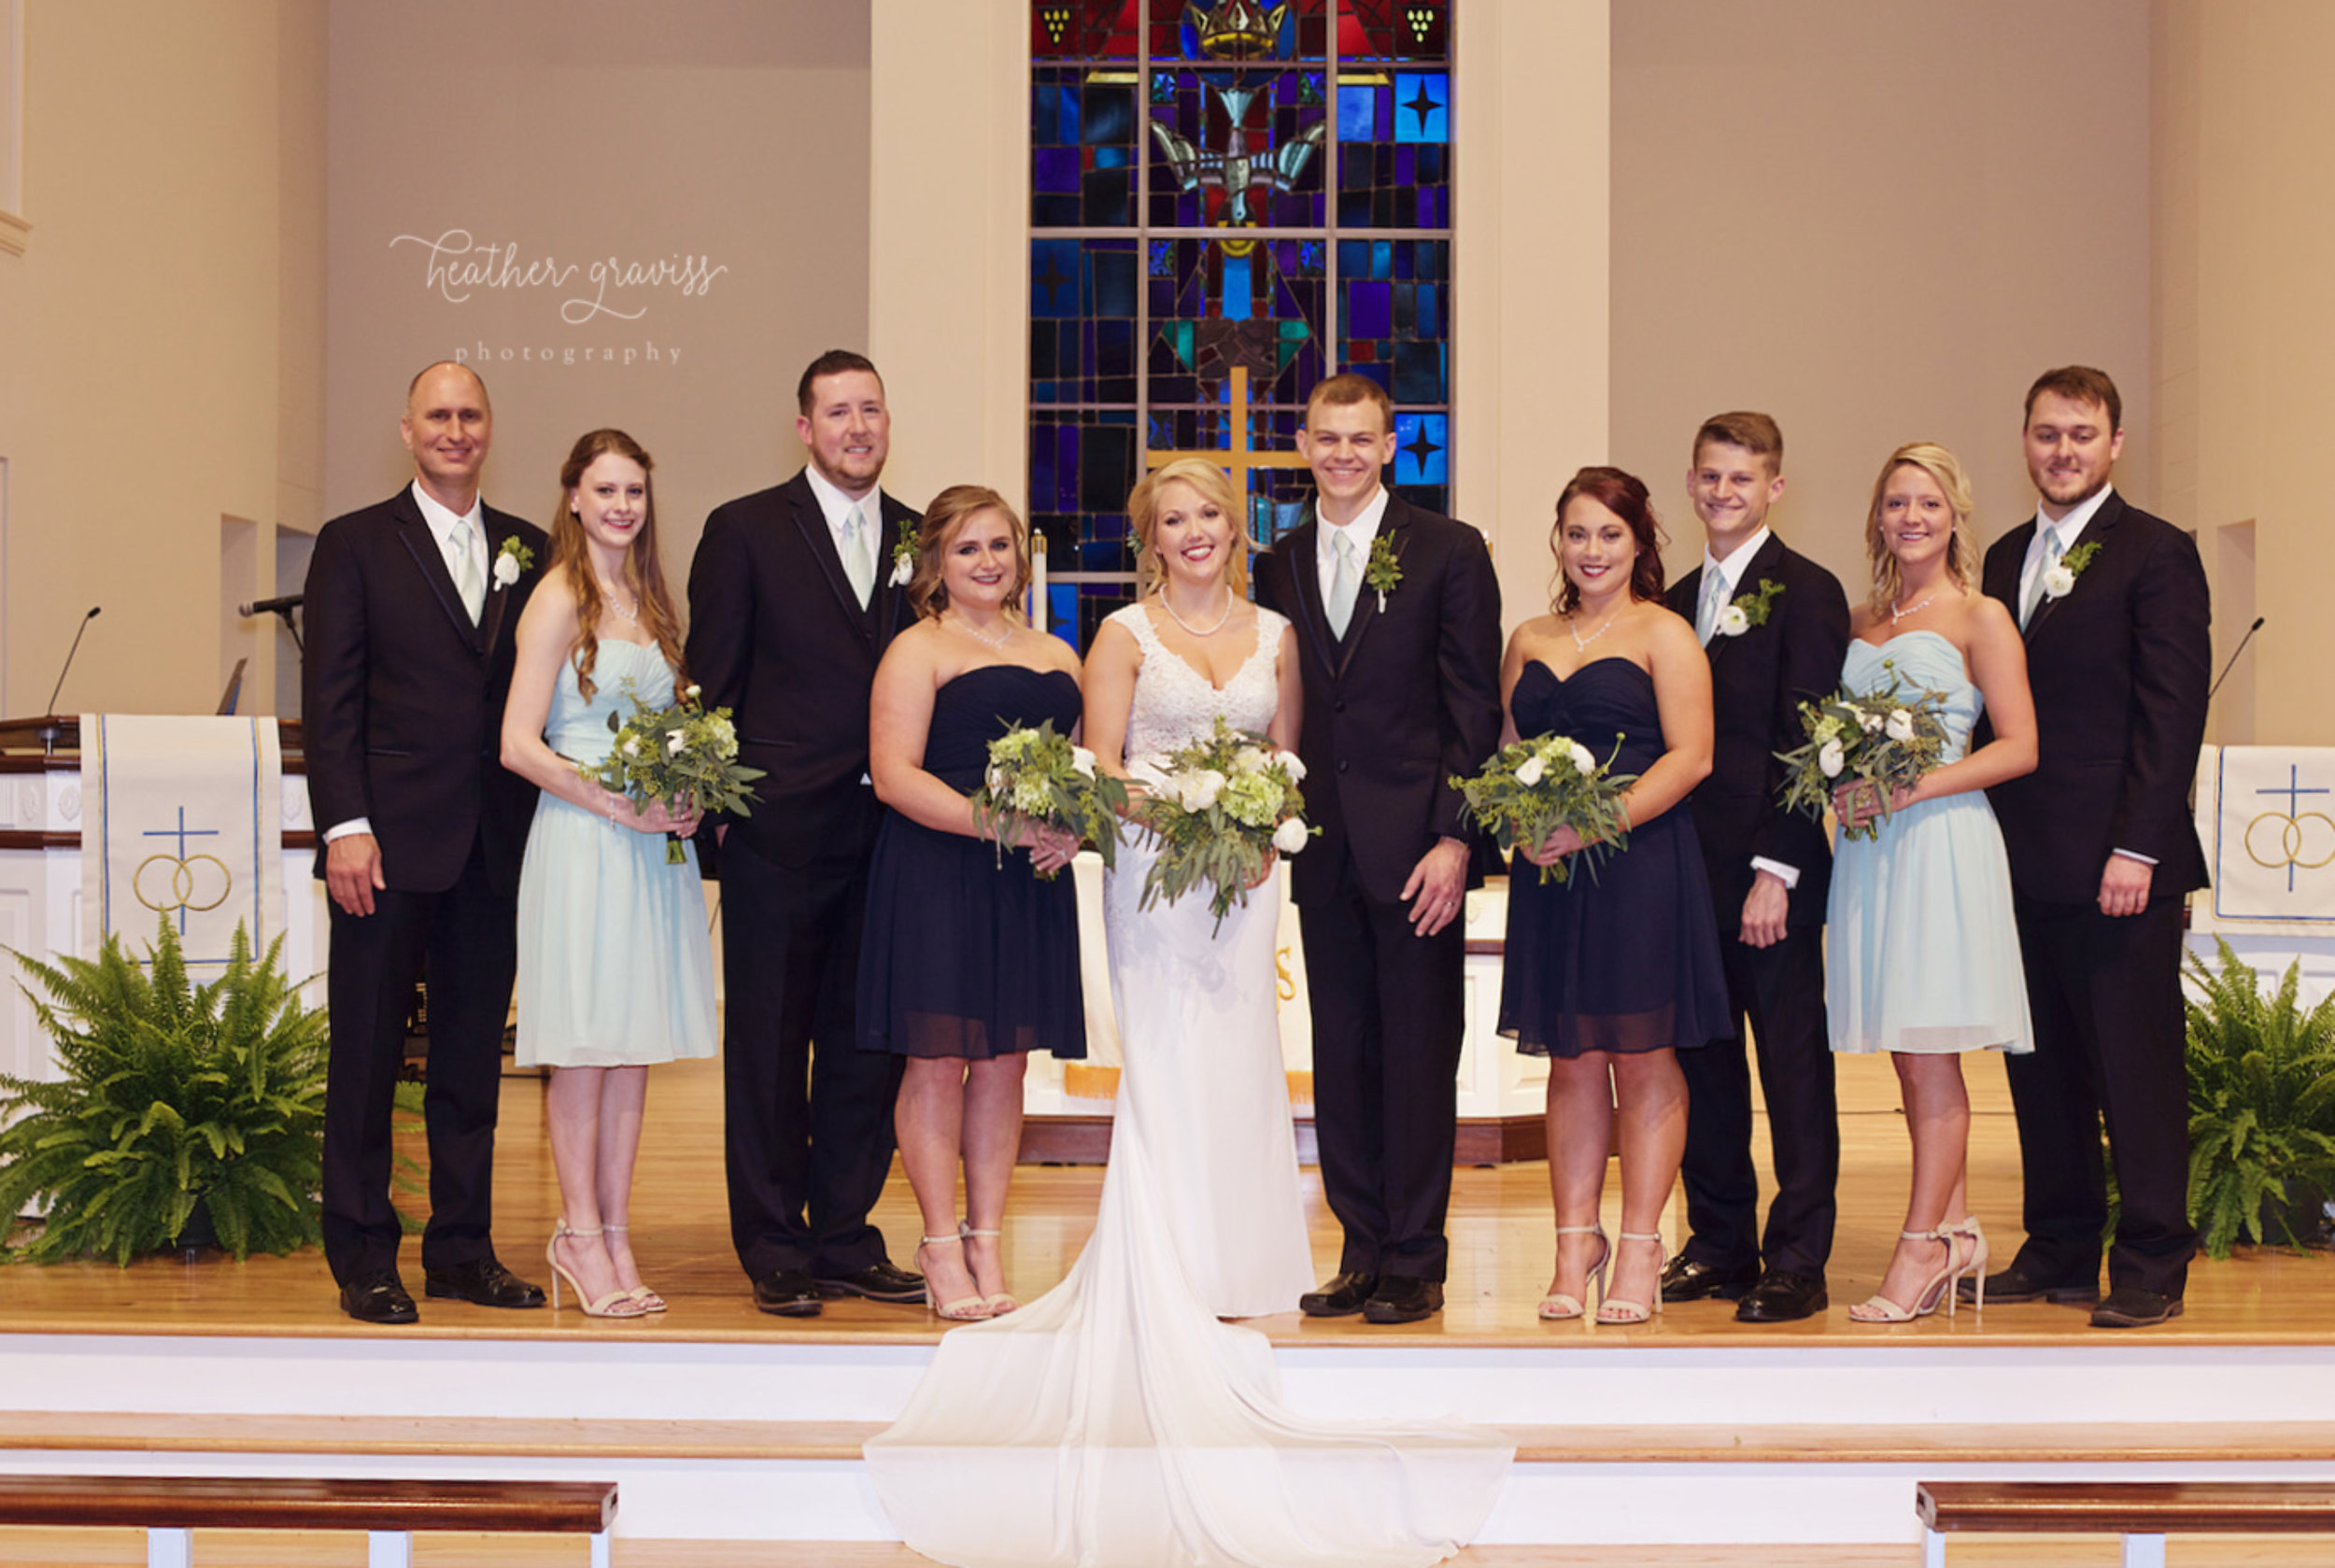 nashville middle tn wedding 095.jpg